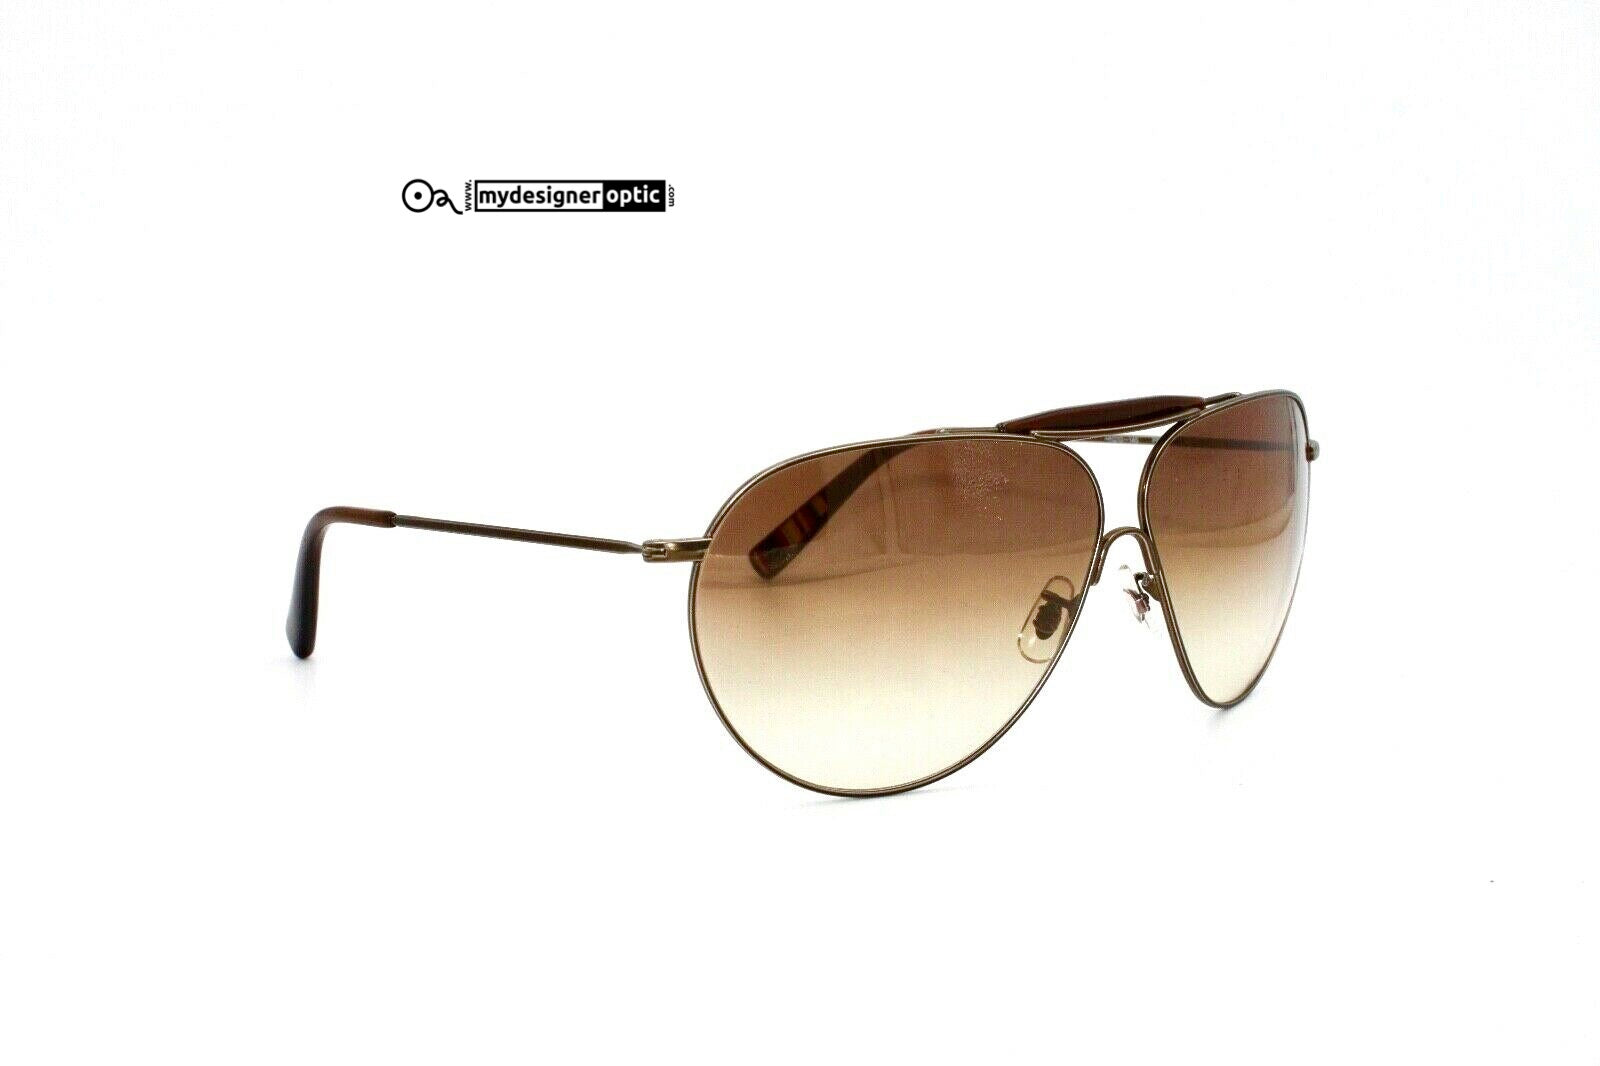 Paul Smith Sunglasses PS-827 66-10-145 W Made in Japan (Real Dead Stock) - Mydesigneroptic